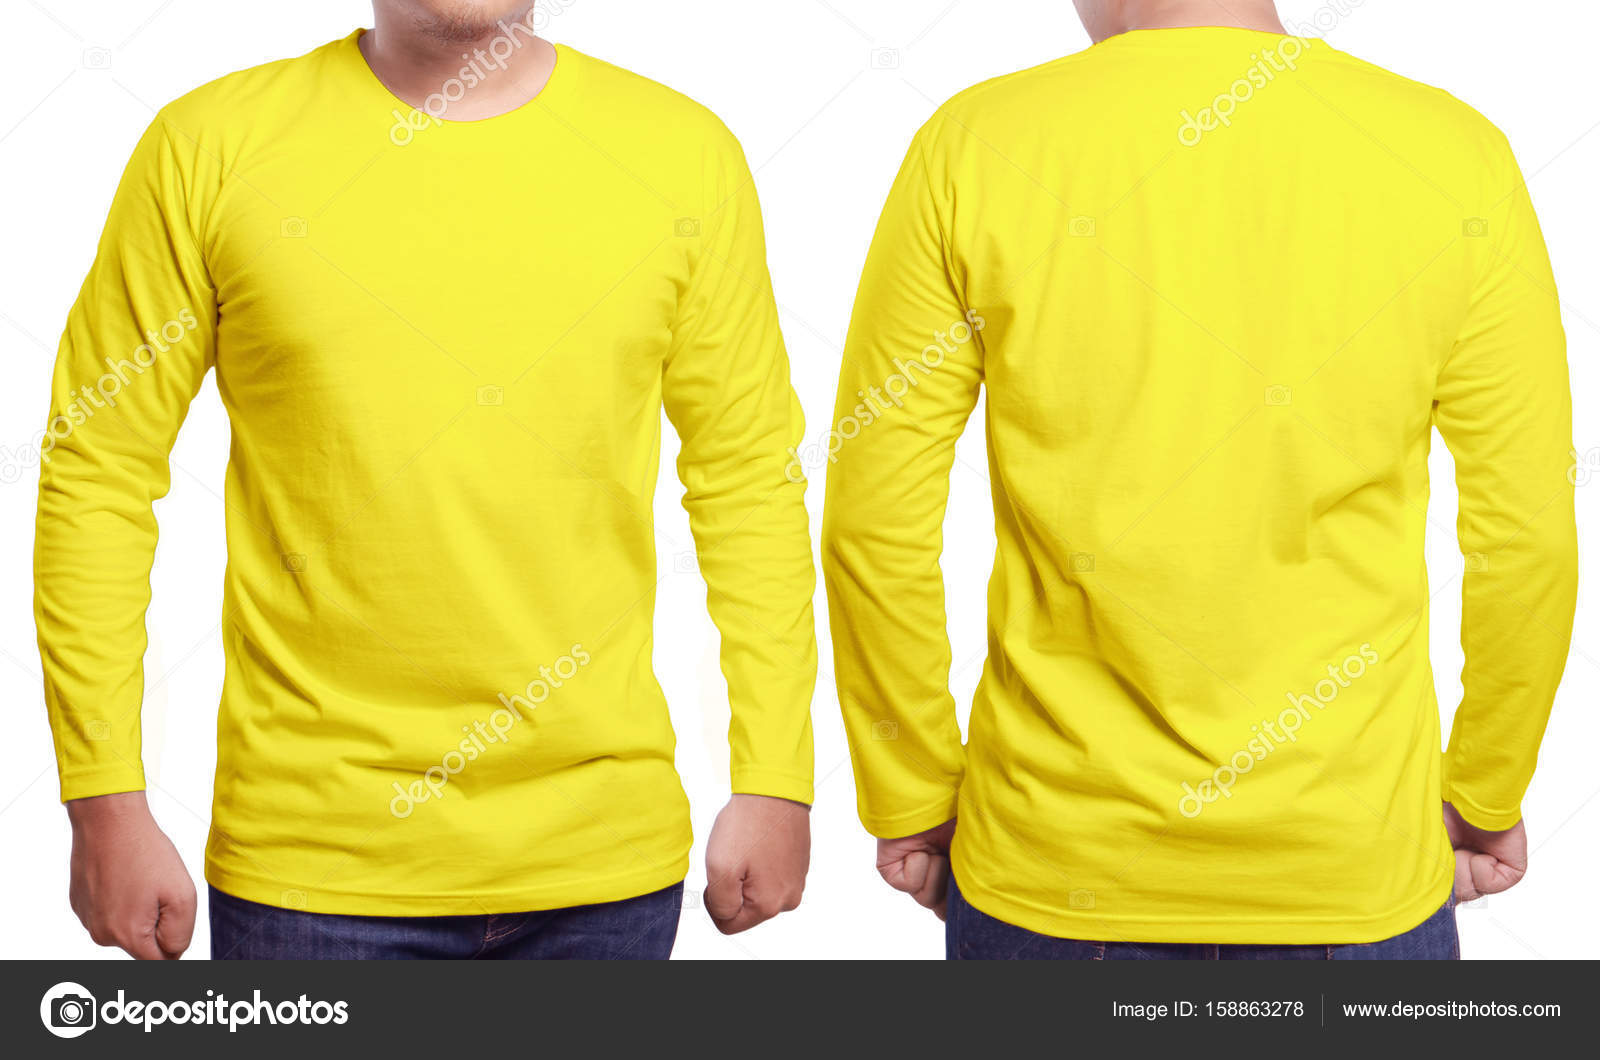 Male Model Wear Plain Yellow Shirt Mockup Long Sleeve Design Template Blank Tees For Print Photo By Airdone